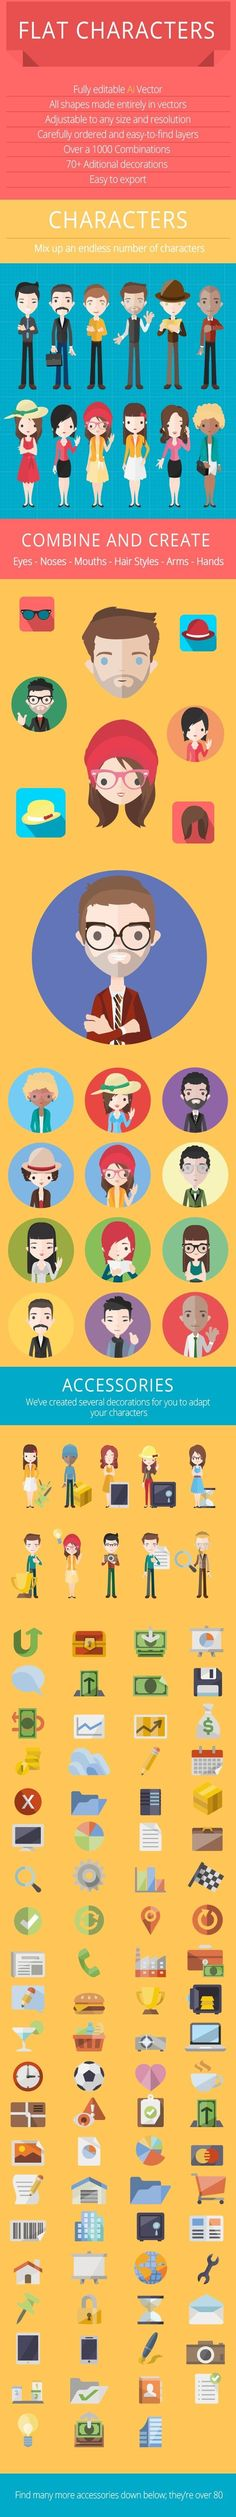 Free Flat Characters: More Than 3000 flat vector characters with over 200 accessories #infographics